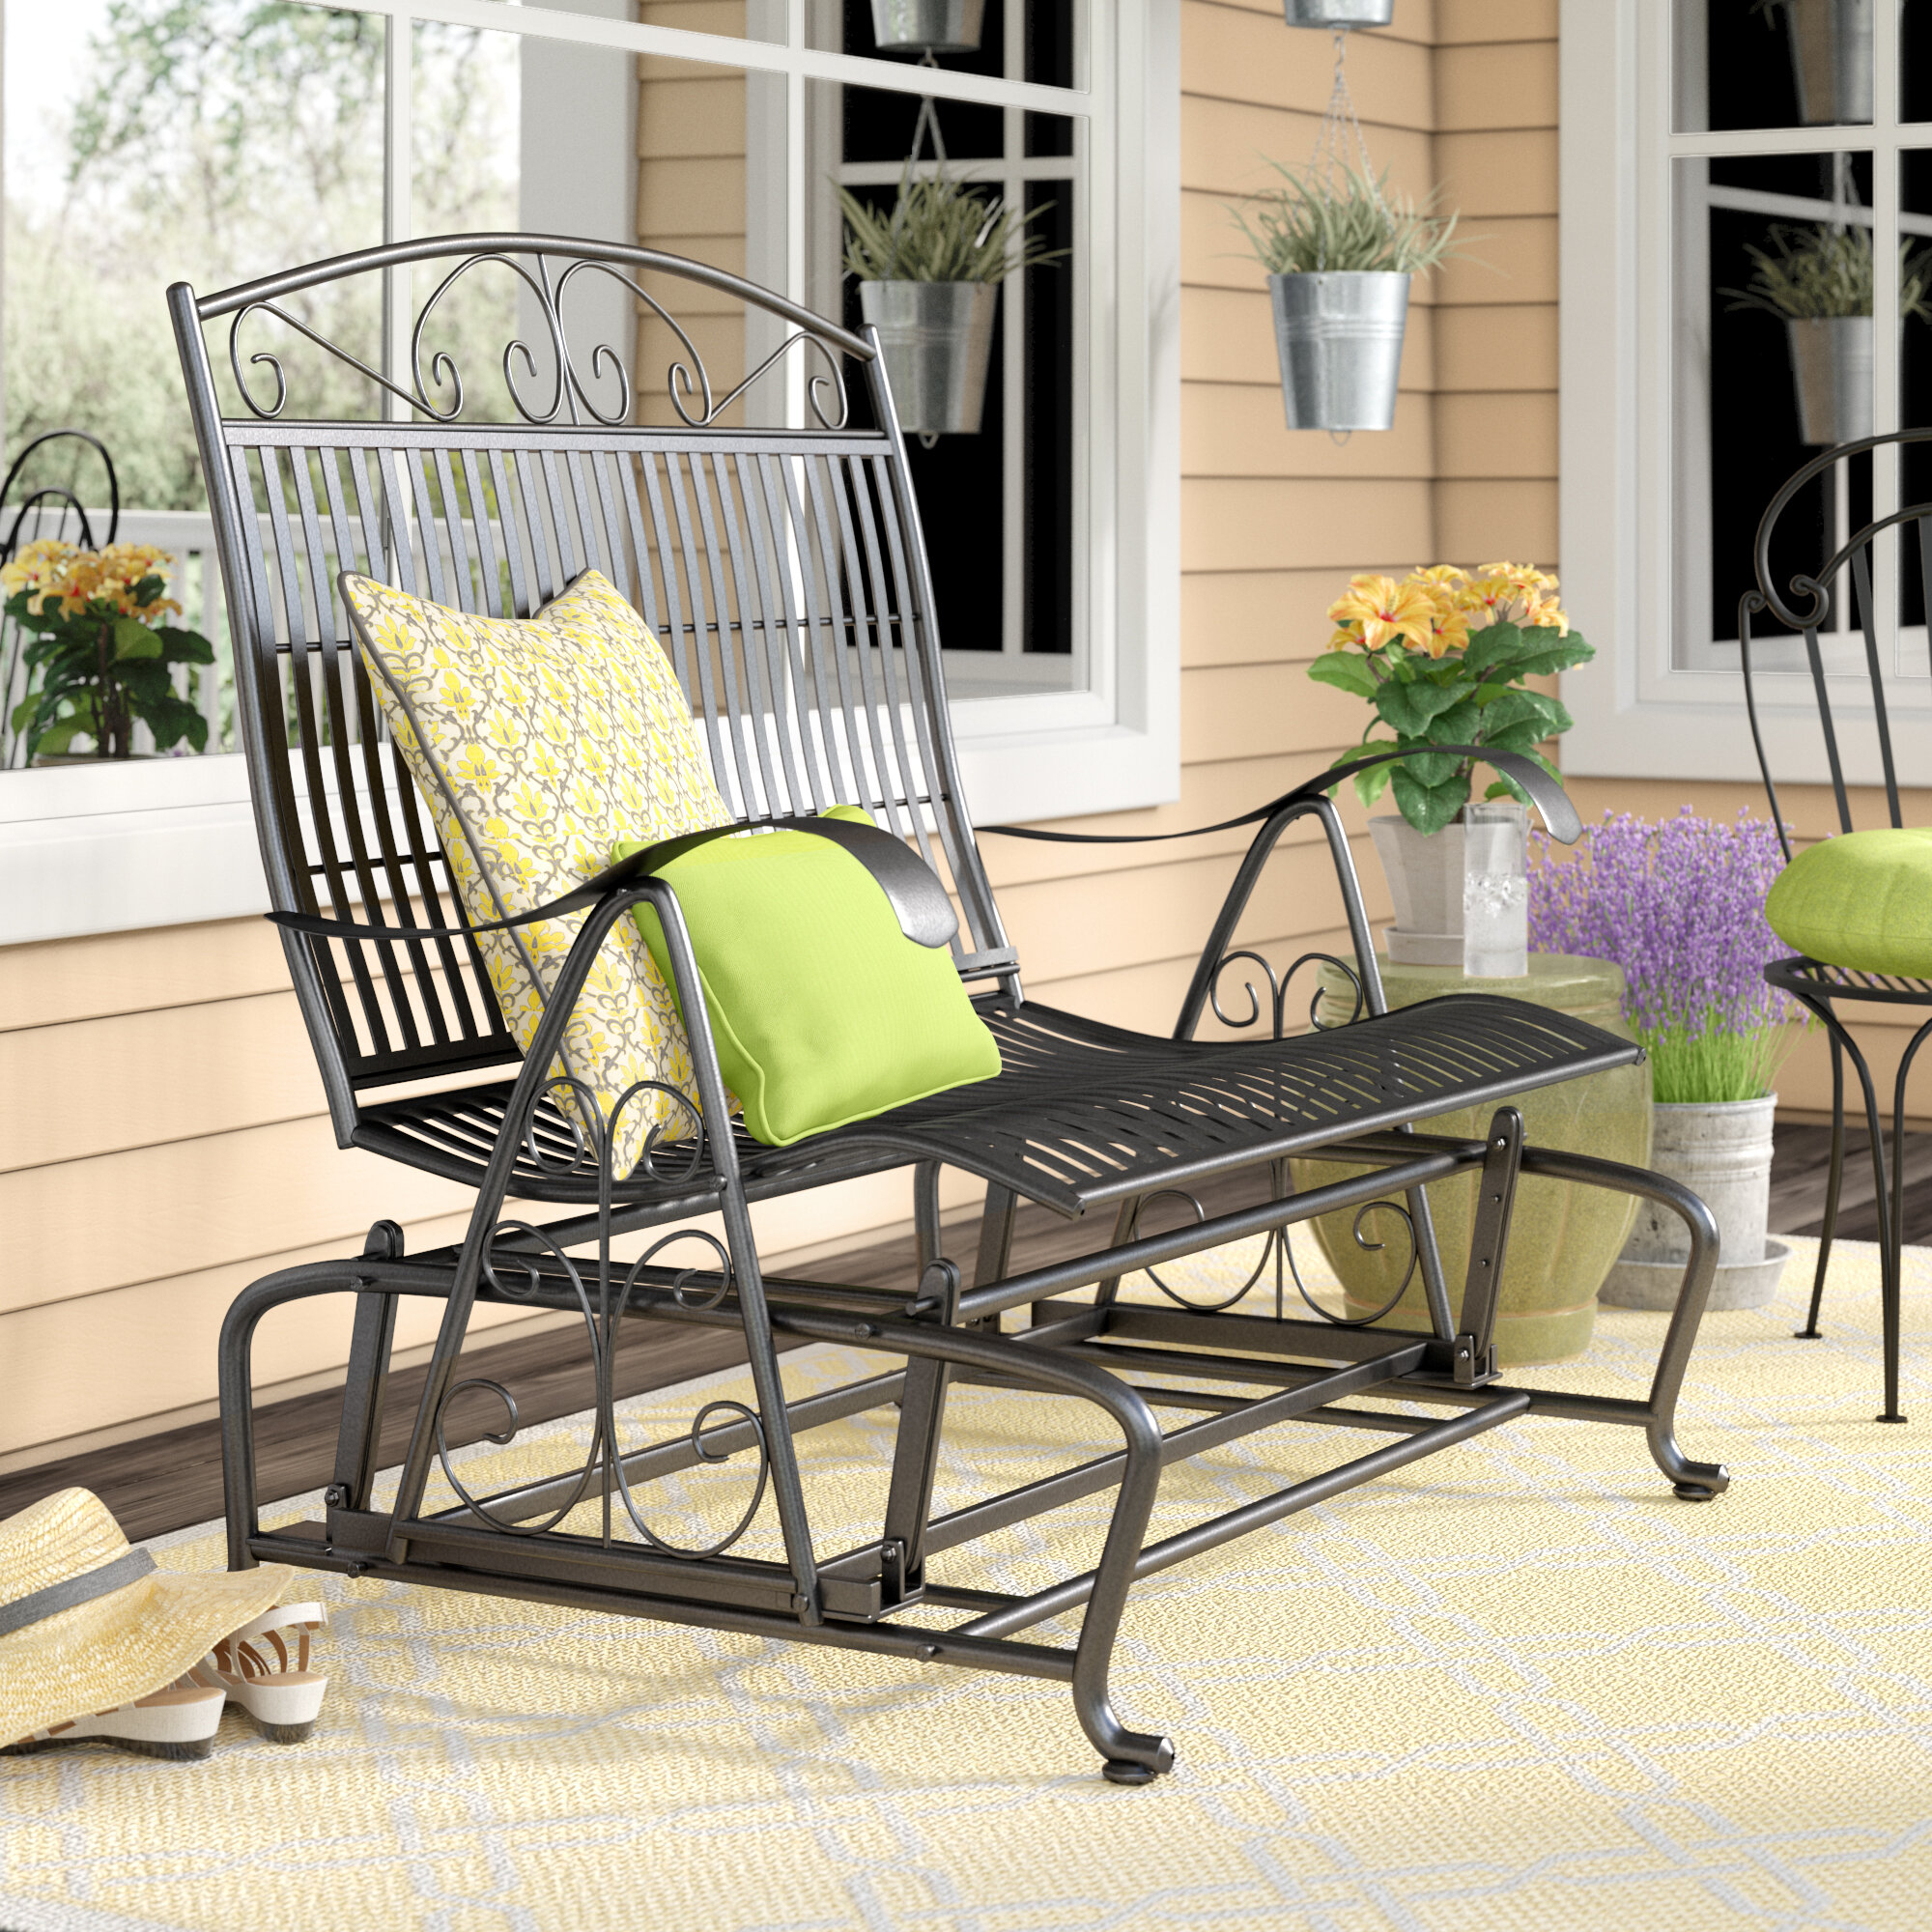 Nocona Iron Double Patio Glider Bench Within Iron Double Patio Glider Benches (Image 17 of 25)